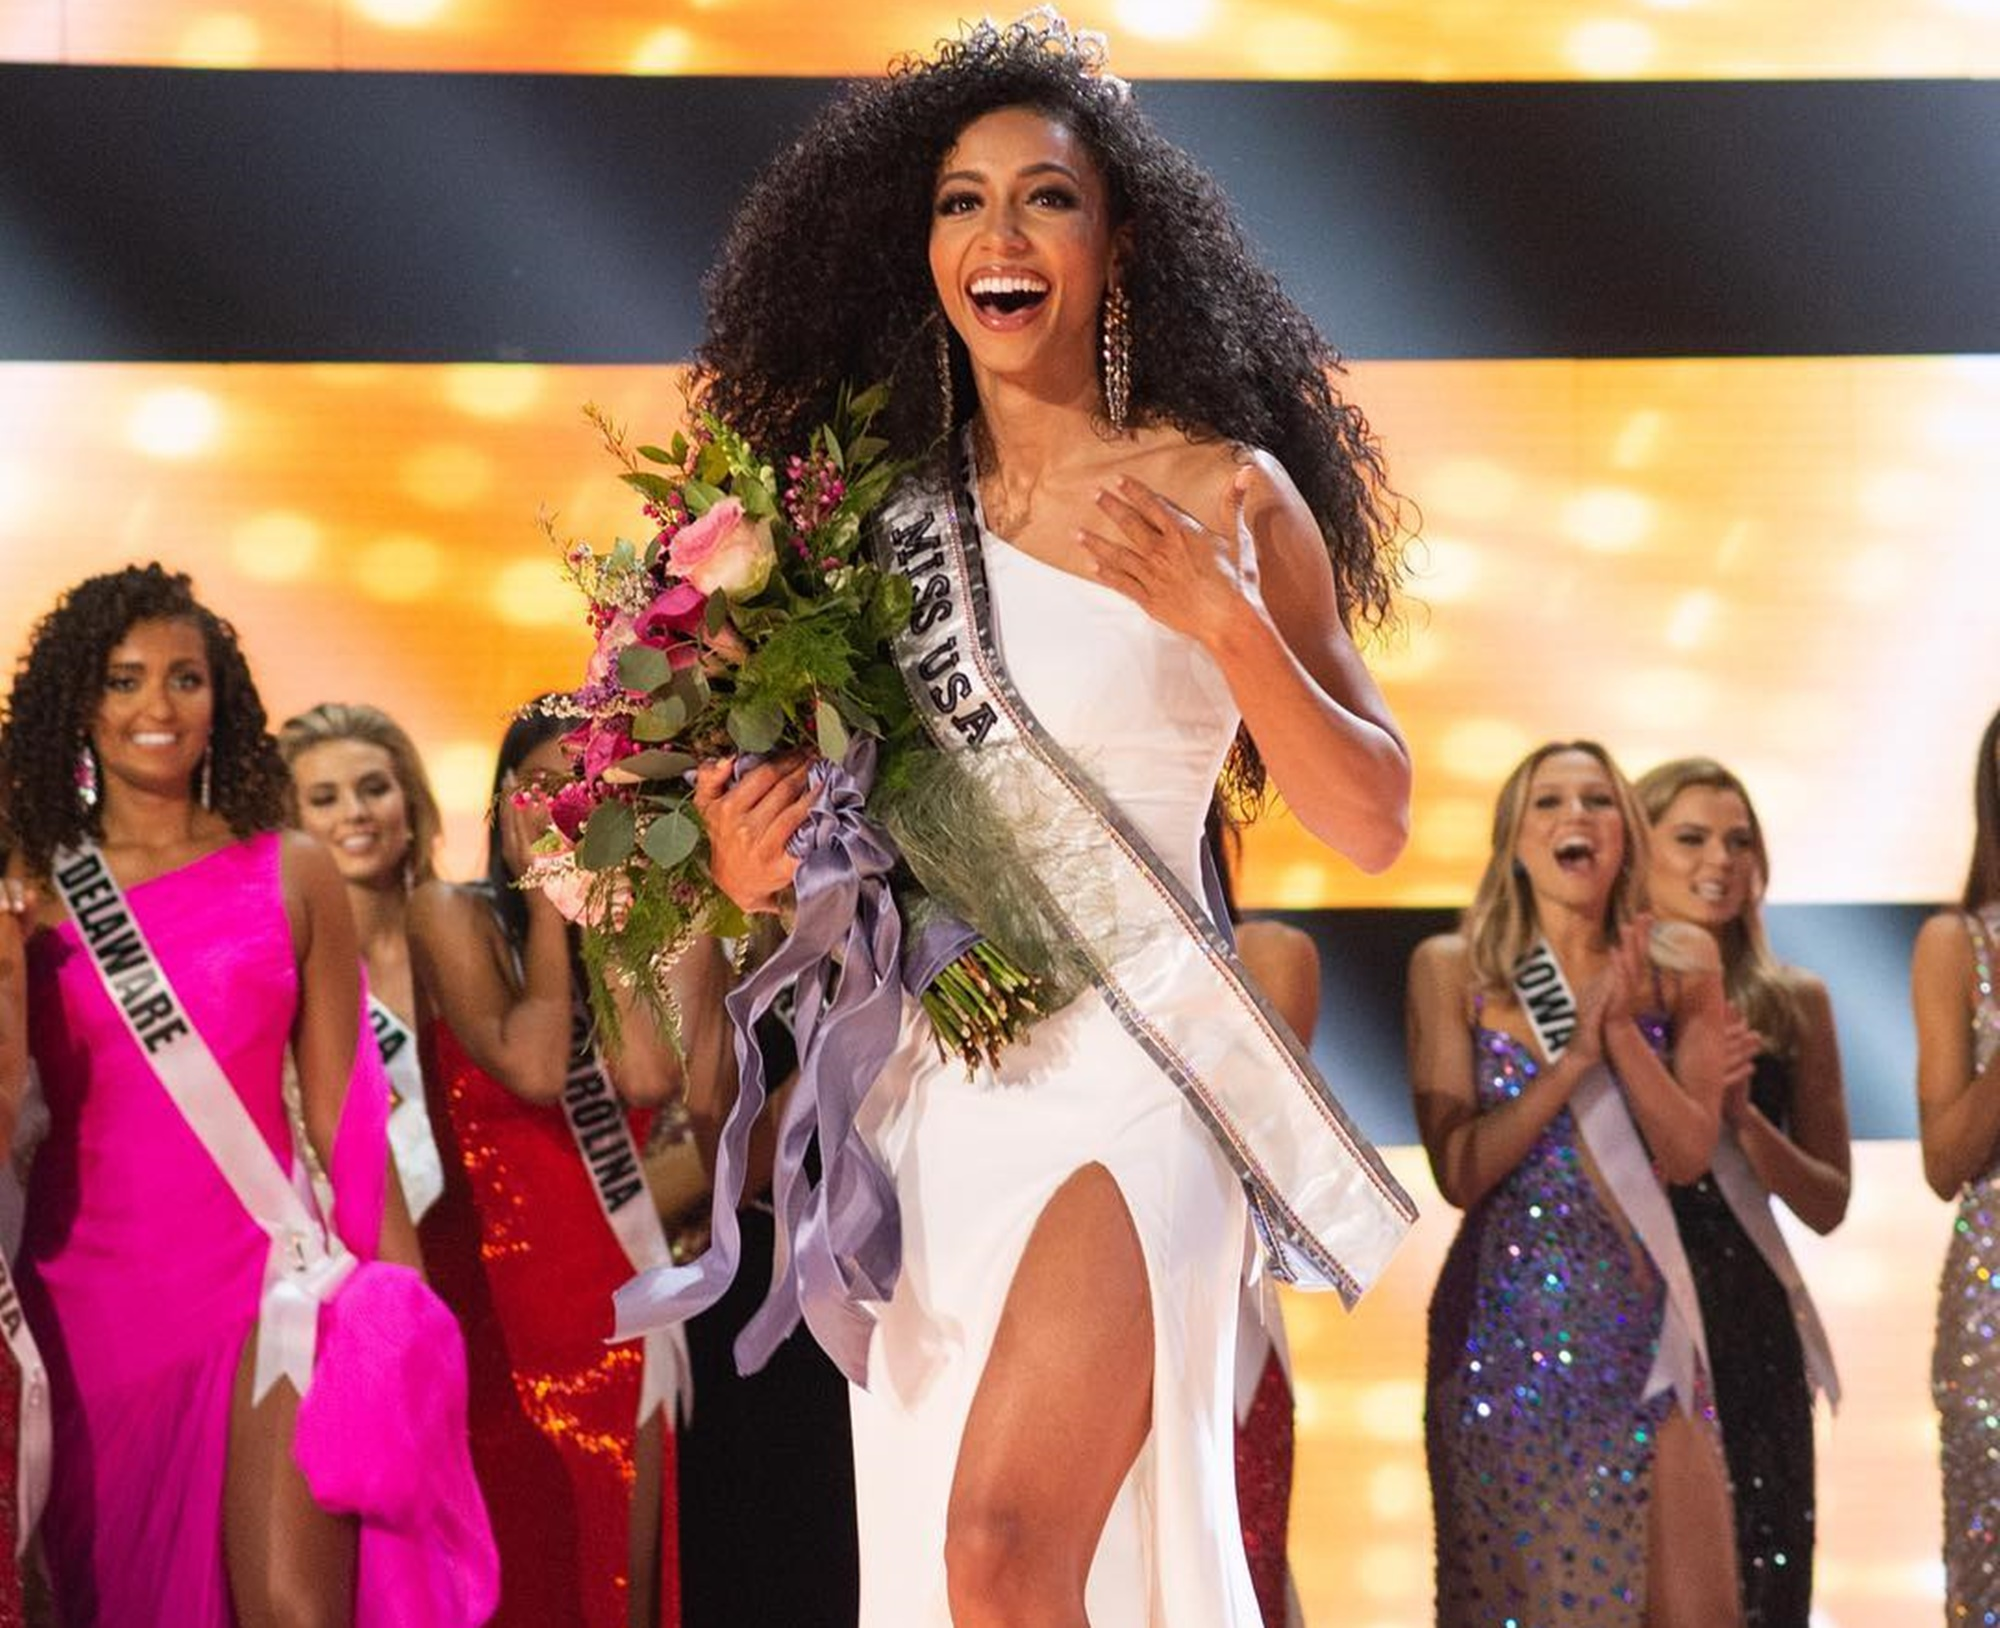 cheslie-kryst-wins-miss-usa-and-fans-applaud-beauty-contest-for-focusing-more-on-accomplishments-instead-of-just-looks